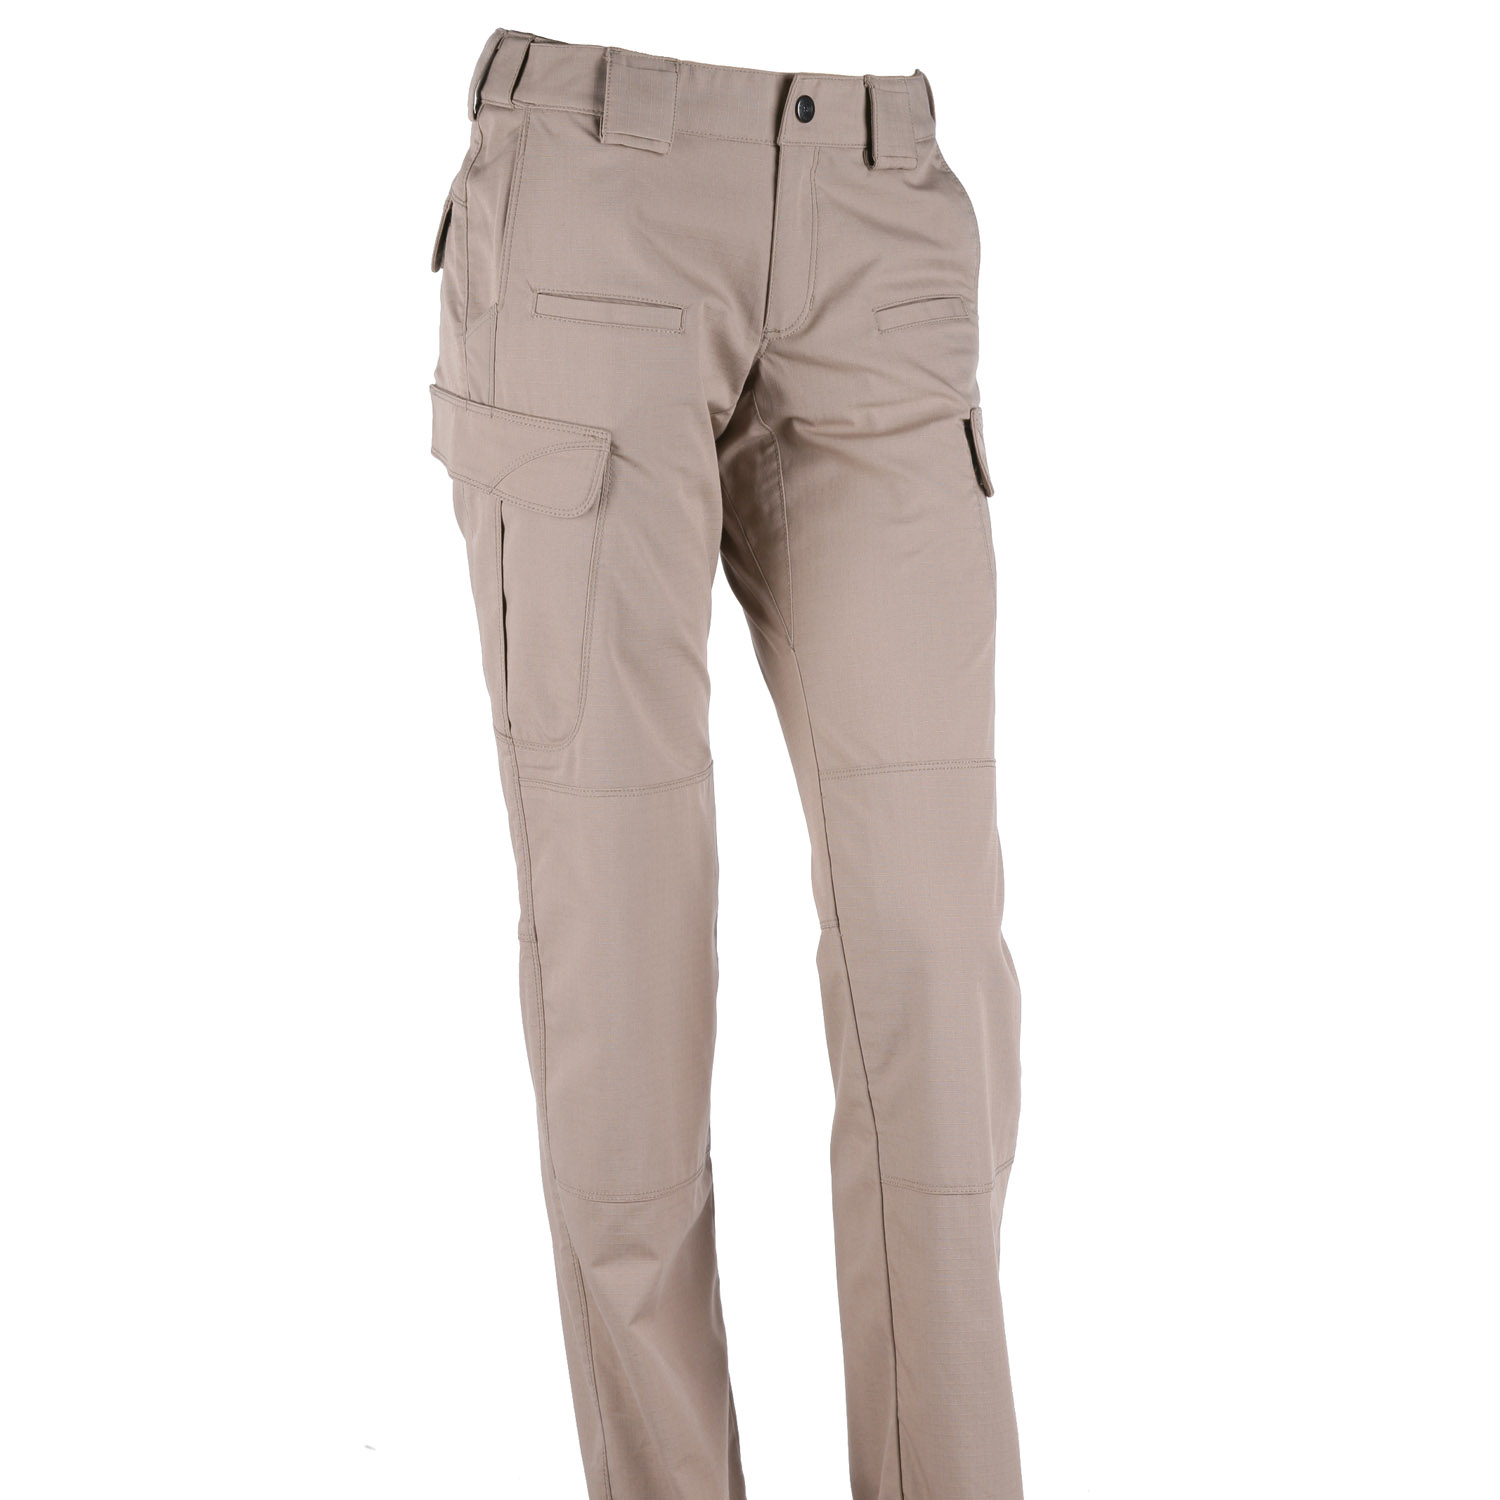 Original Also New Are The Kiwi Trek Convertible Pants, The Ideal Travel Pant Offering A